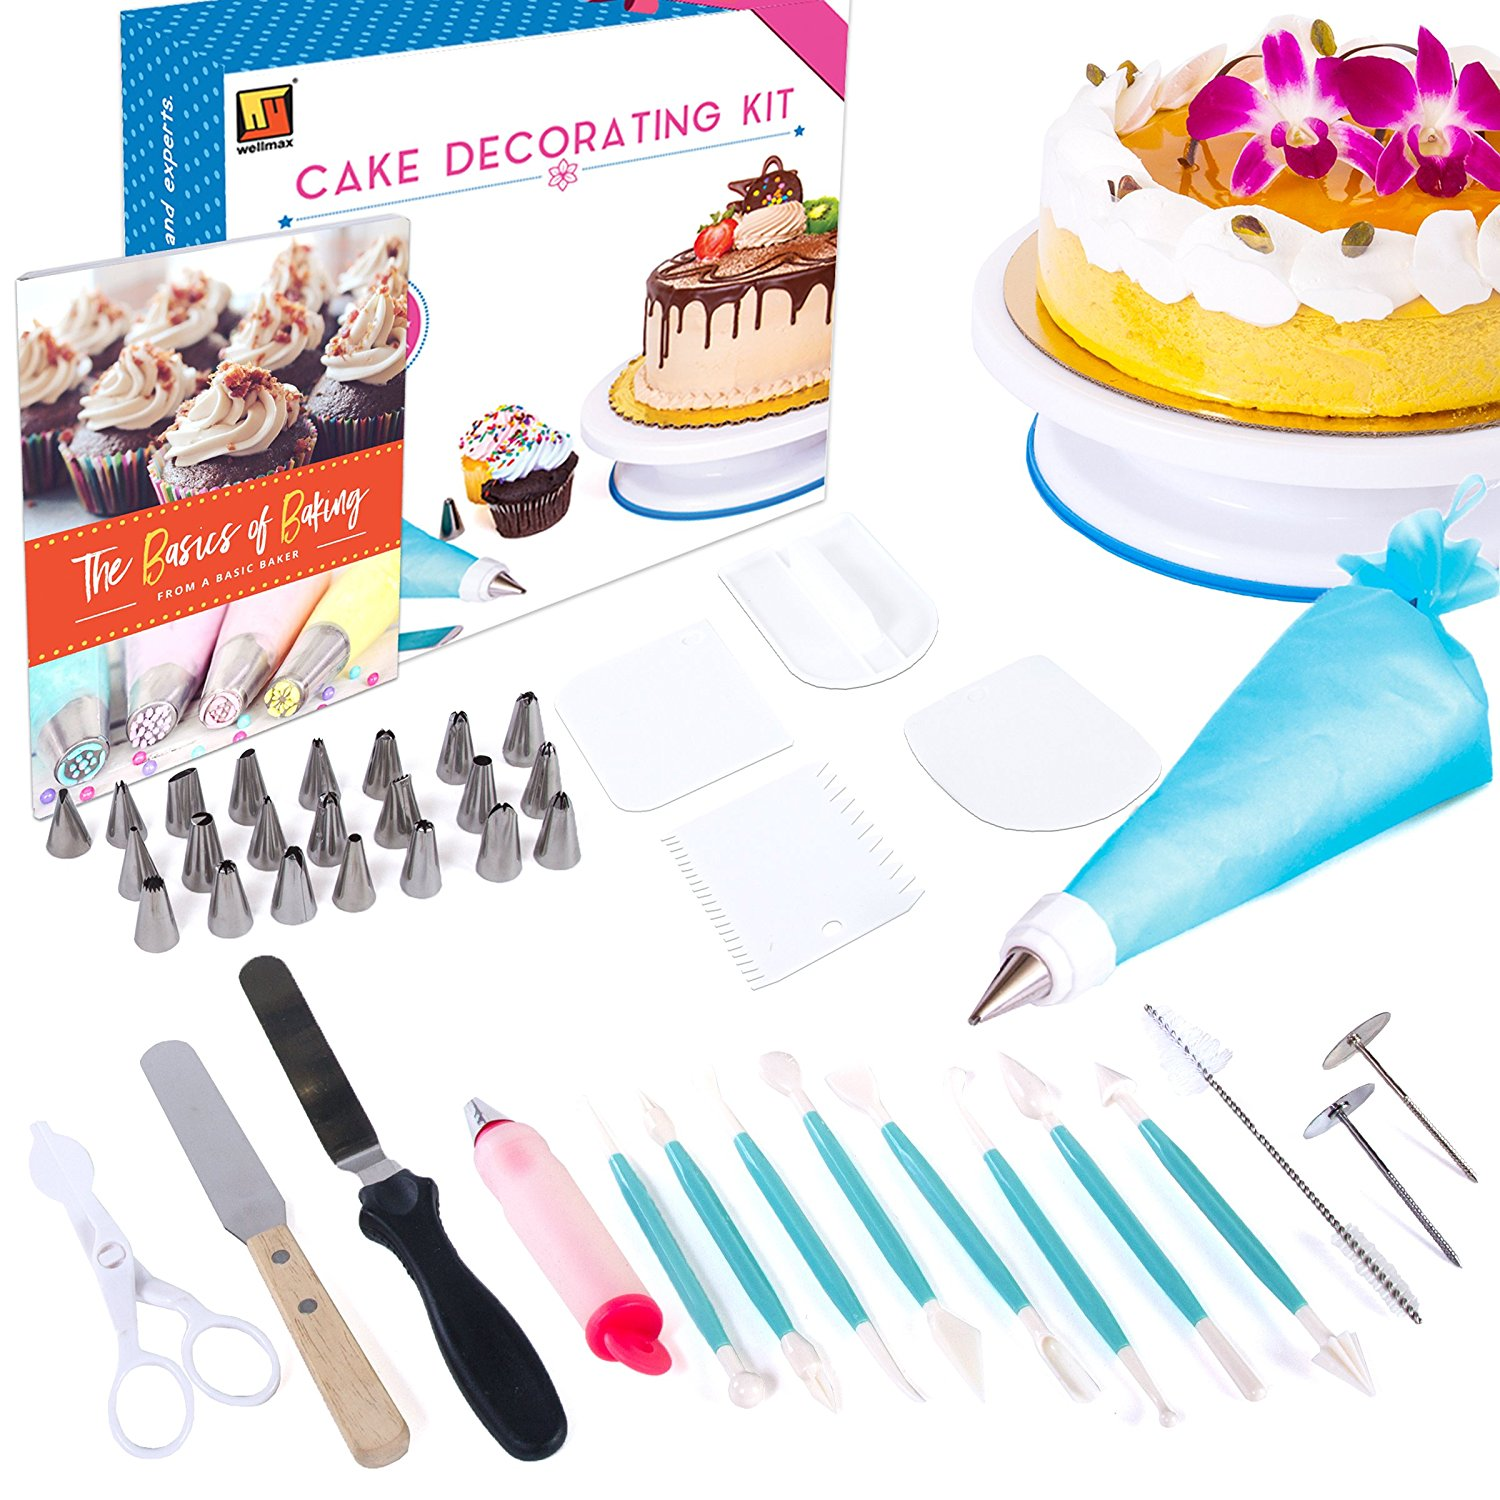 Cake Decorating Kit by Wellmax | Complete Set of Baking Supplies Incl. Pastry Bag and Cake Turntable Stand for Cupcakes | 24pc Russian Piping Tips + Large Selection of Silicone Tools